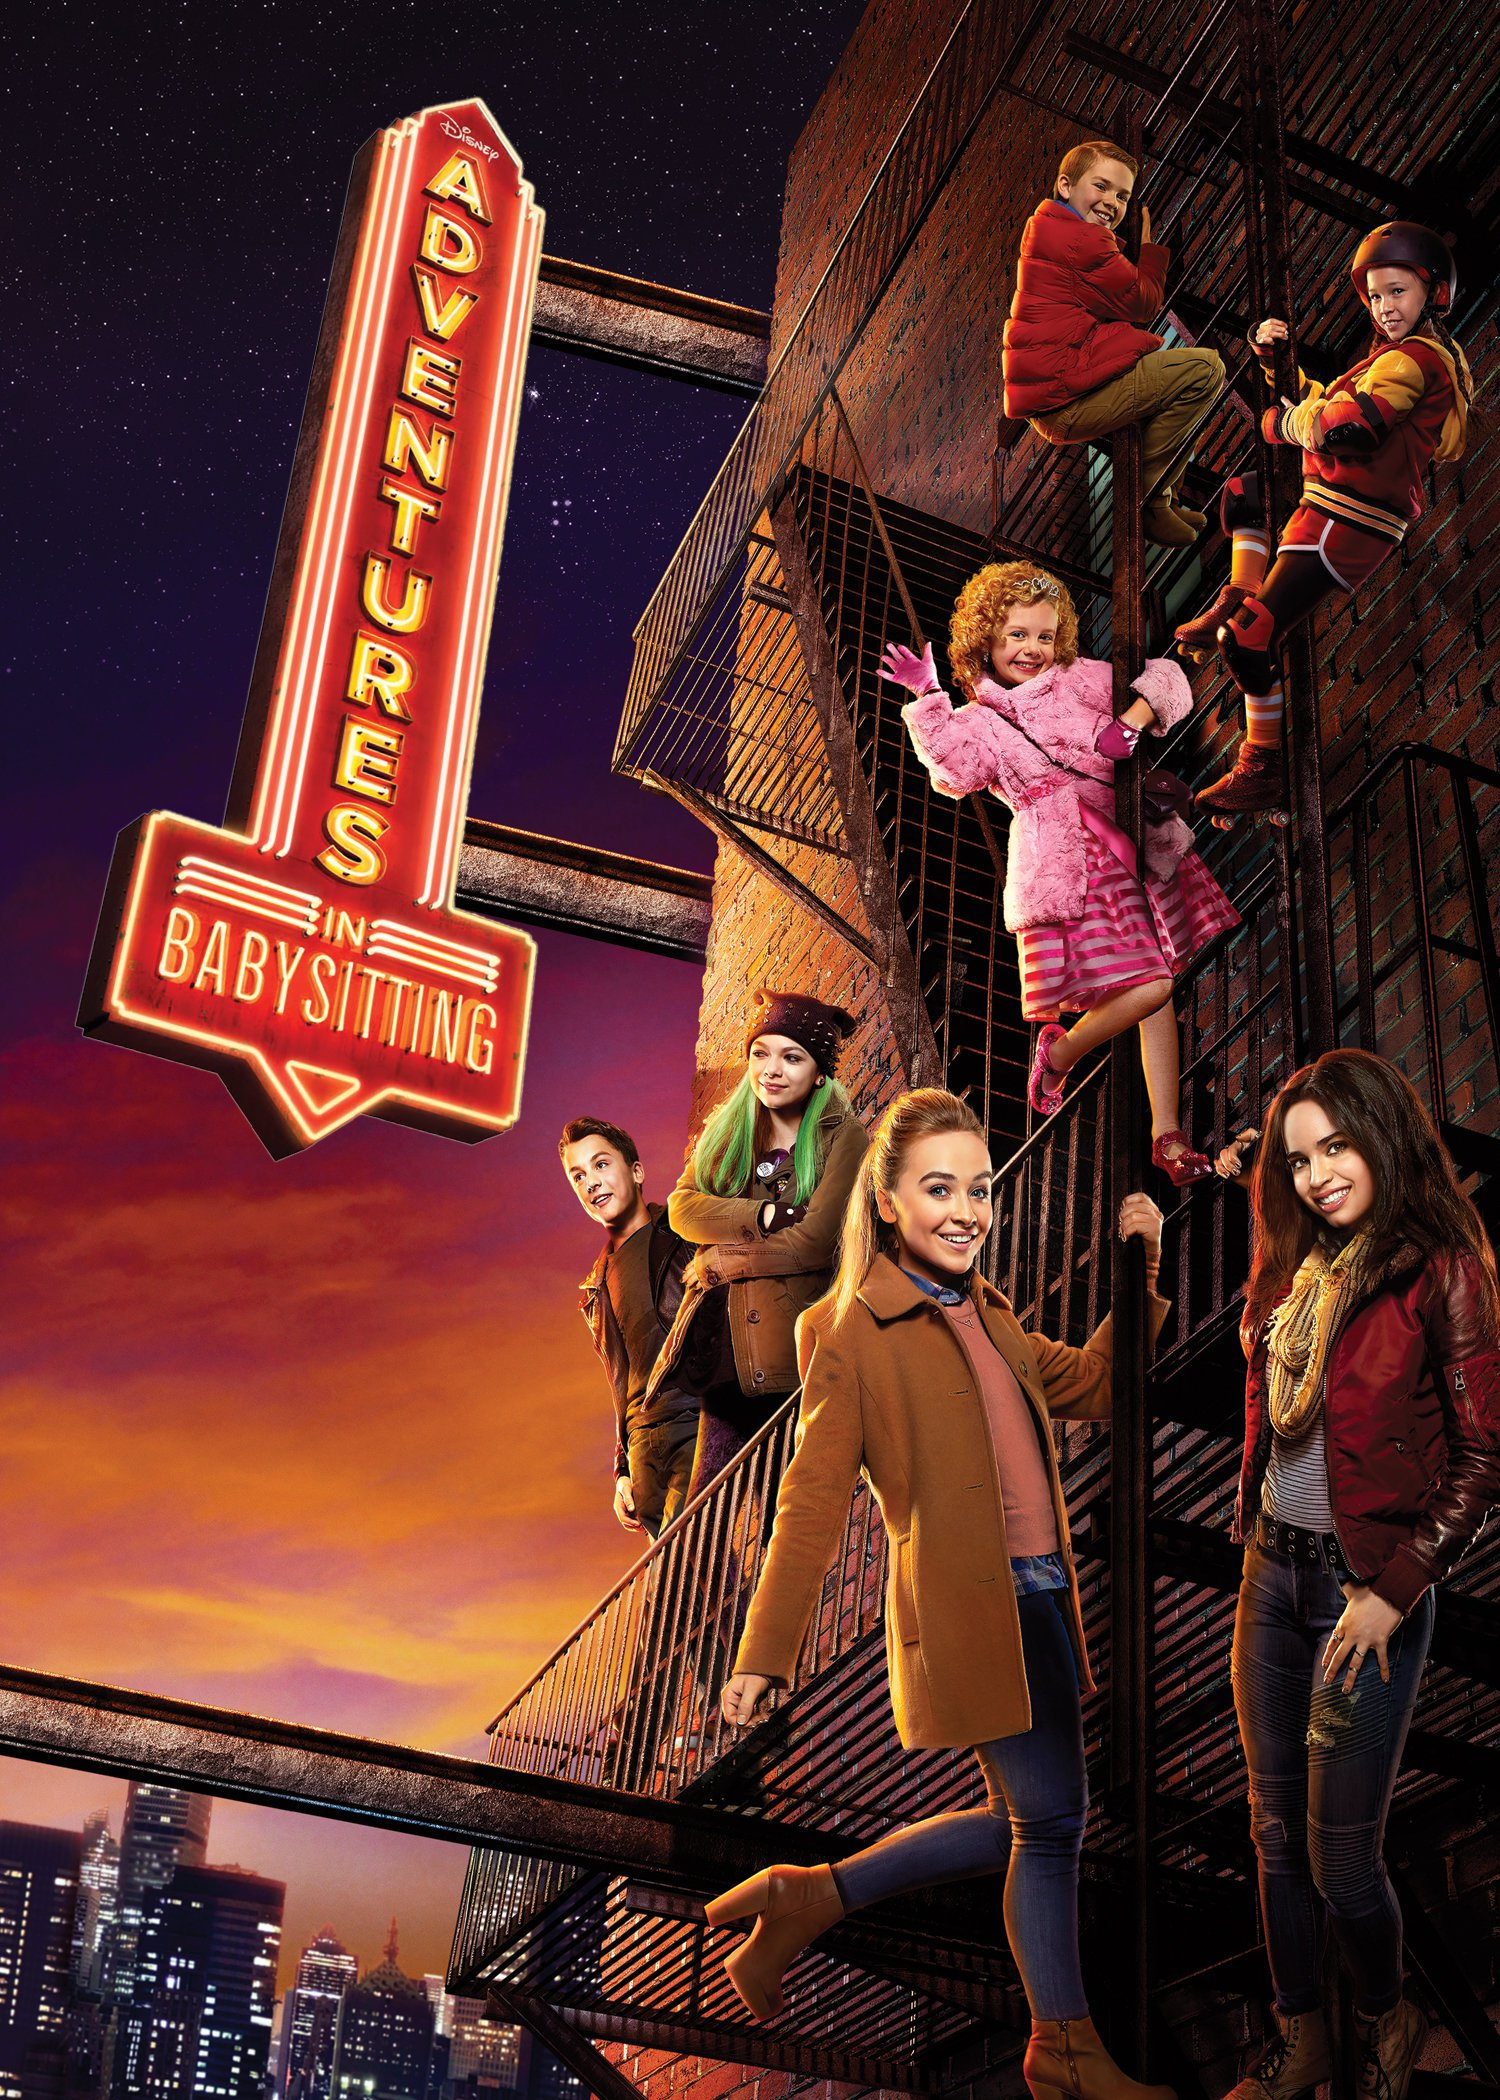 disney-adventures-in-babysitting-2016